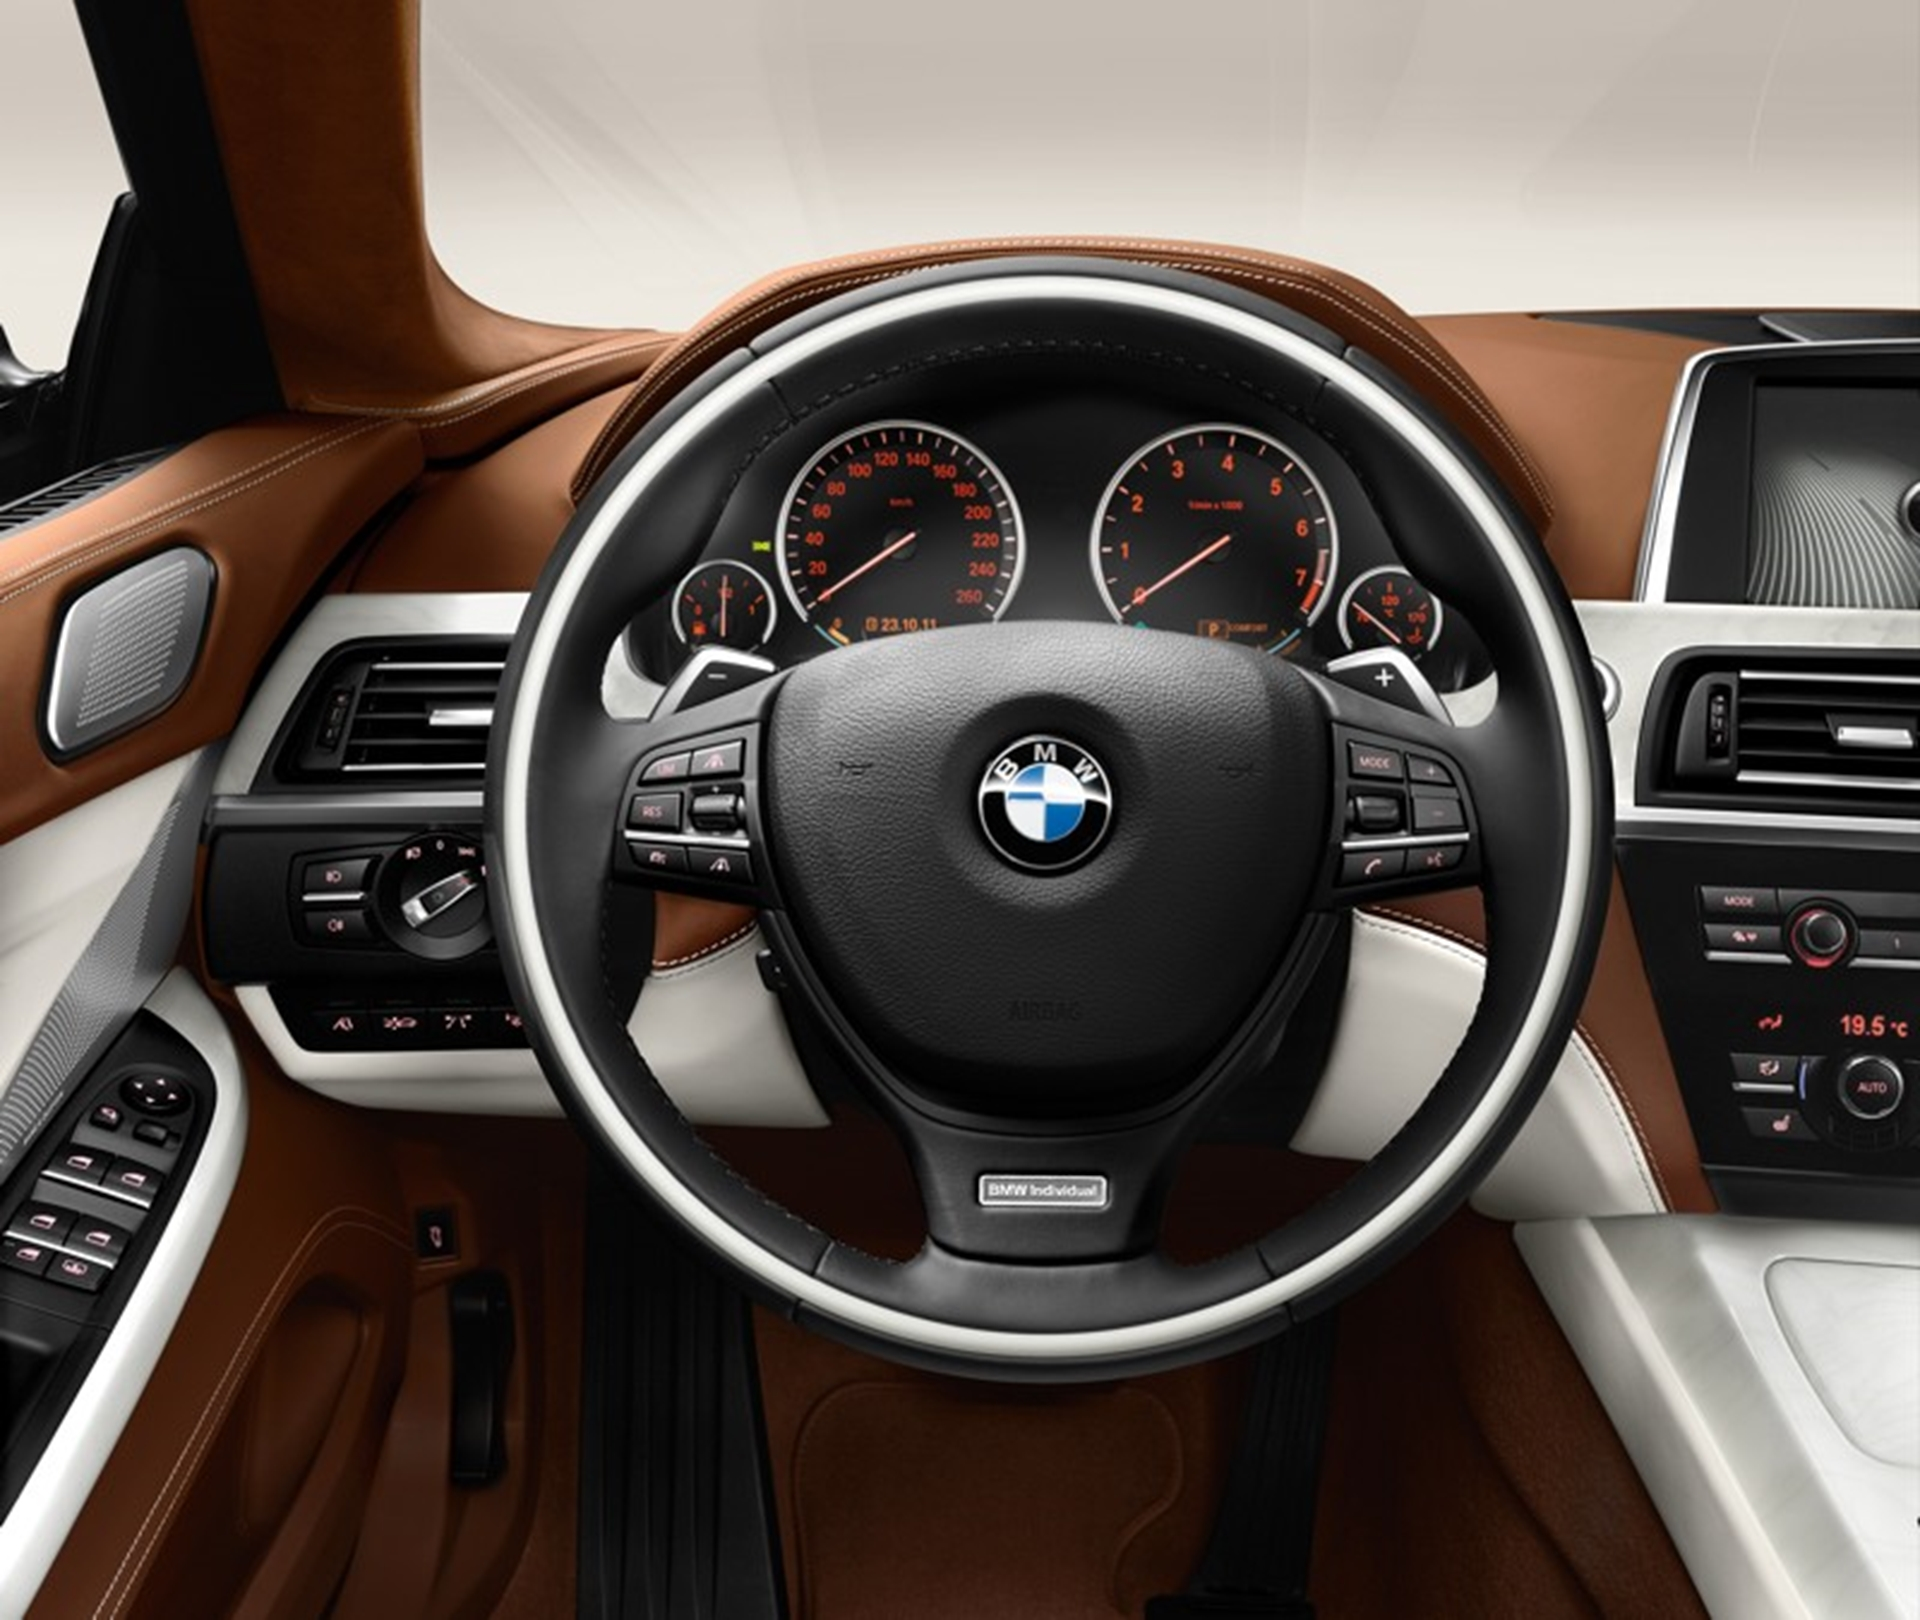 Bmw 6 Series Gran Coupe Interior With Bmw S Traditional Driver Oriented Cockpit